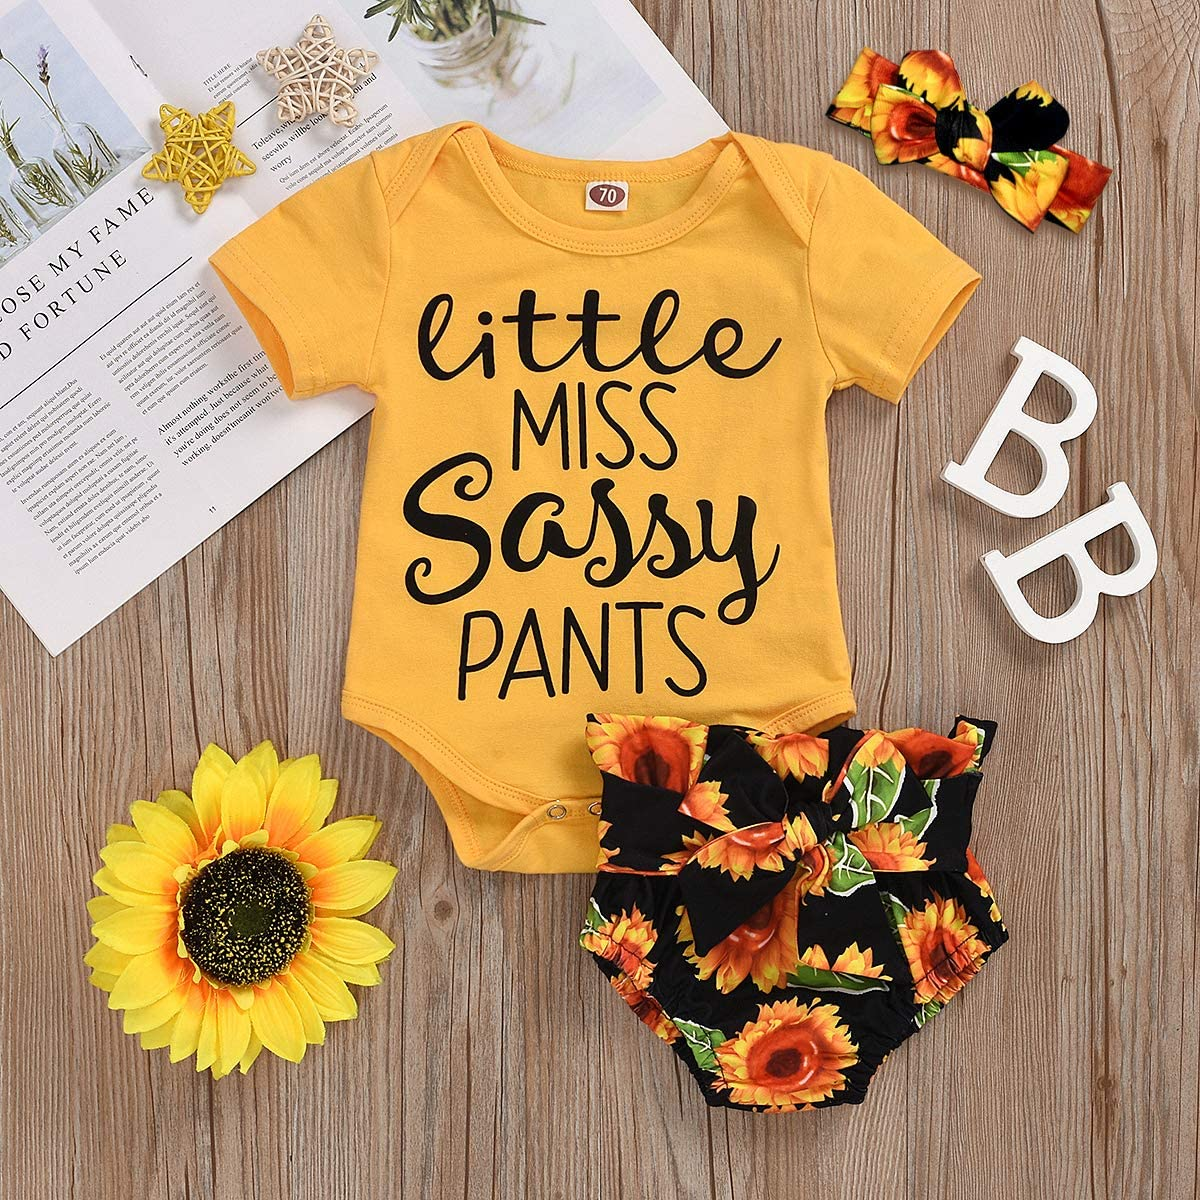 Newborn Baby Girl Clothes Sunflower Wild Ox Romper Floral Pants with Headband 3Pcs Summer Outfit Set 0-18Months